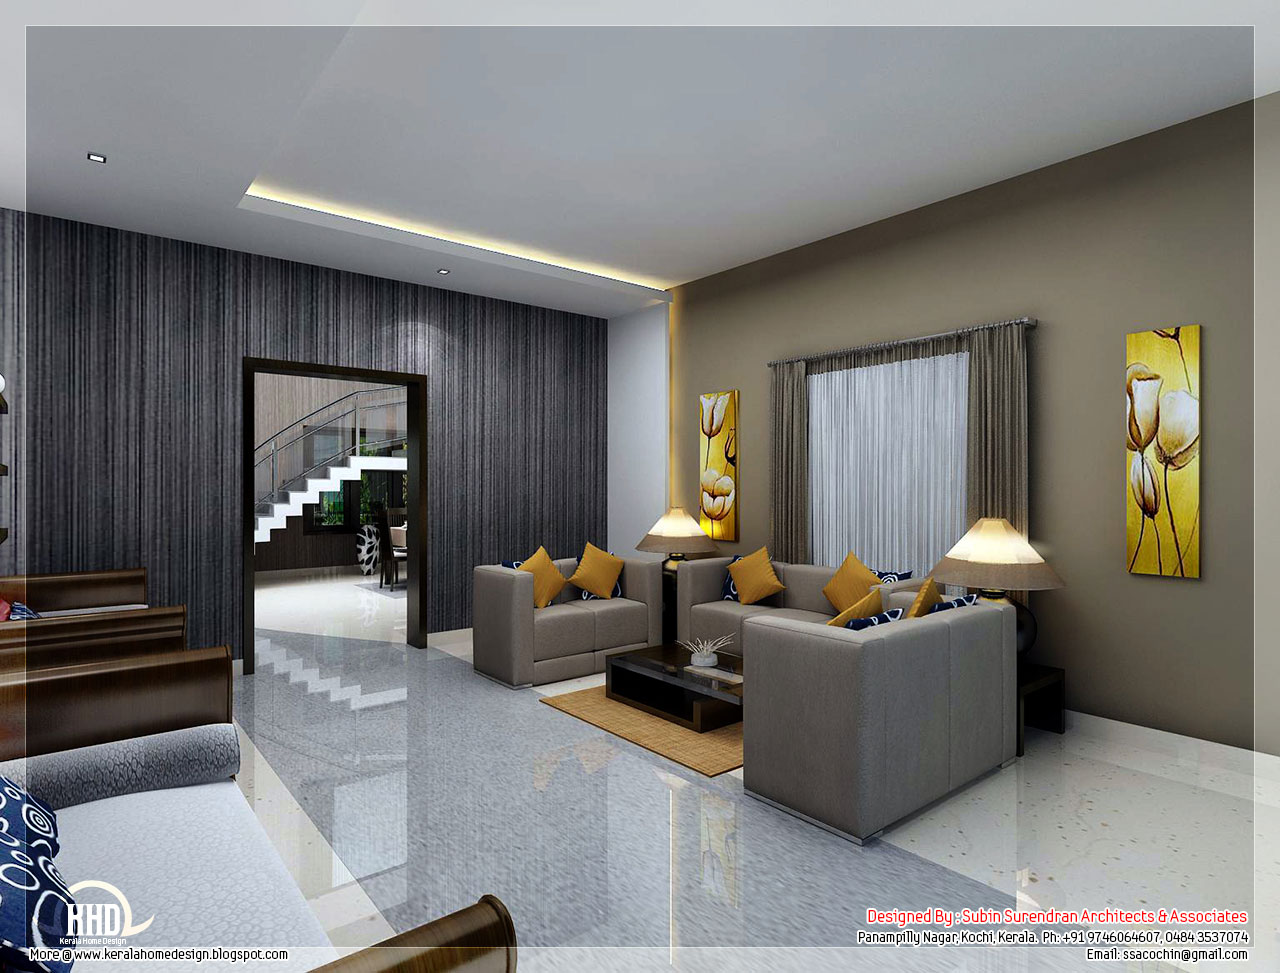 Awesome 3D interior renderings | House Design Plans on House Interior Ideas  id=71183